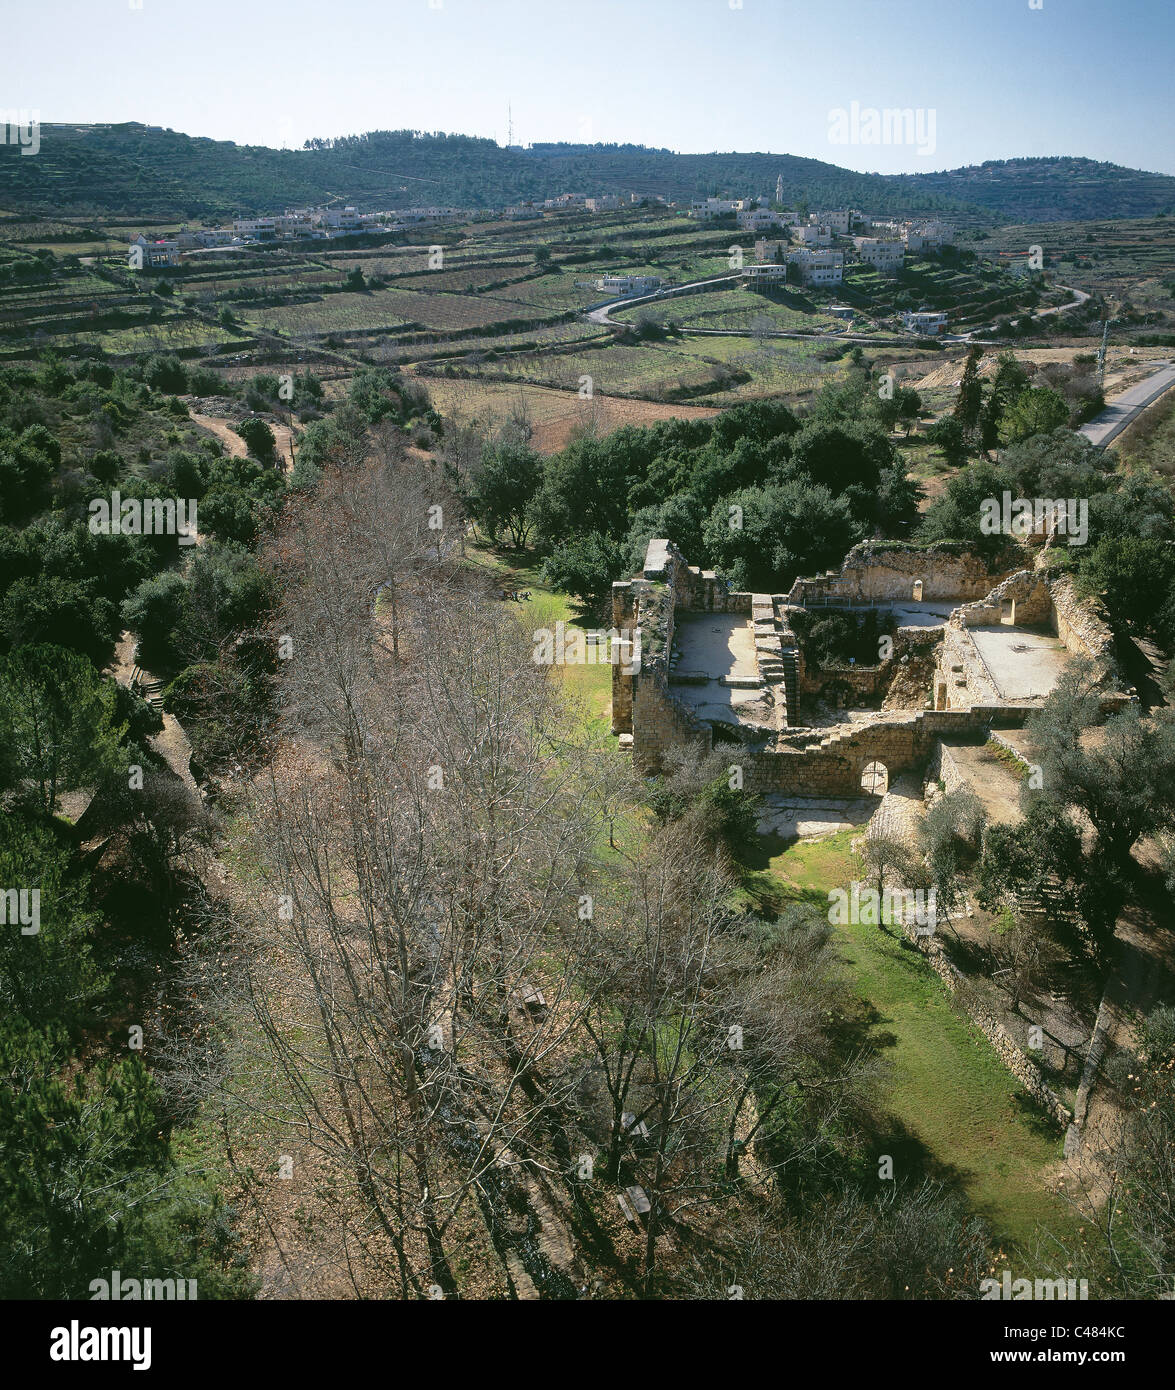 Aerial view of the ruins of the agricultural estate at En Hemed west of Jerusalem - Stock Image